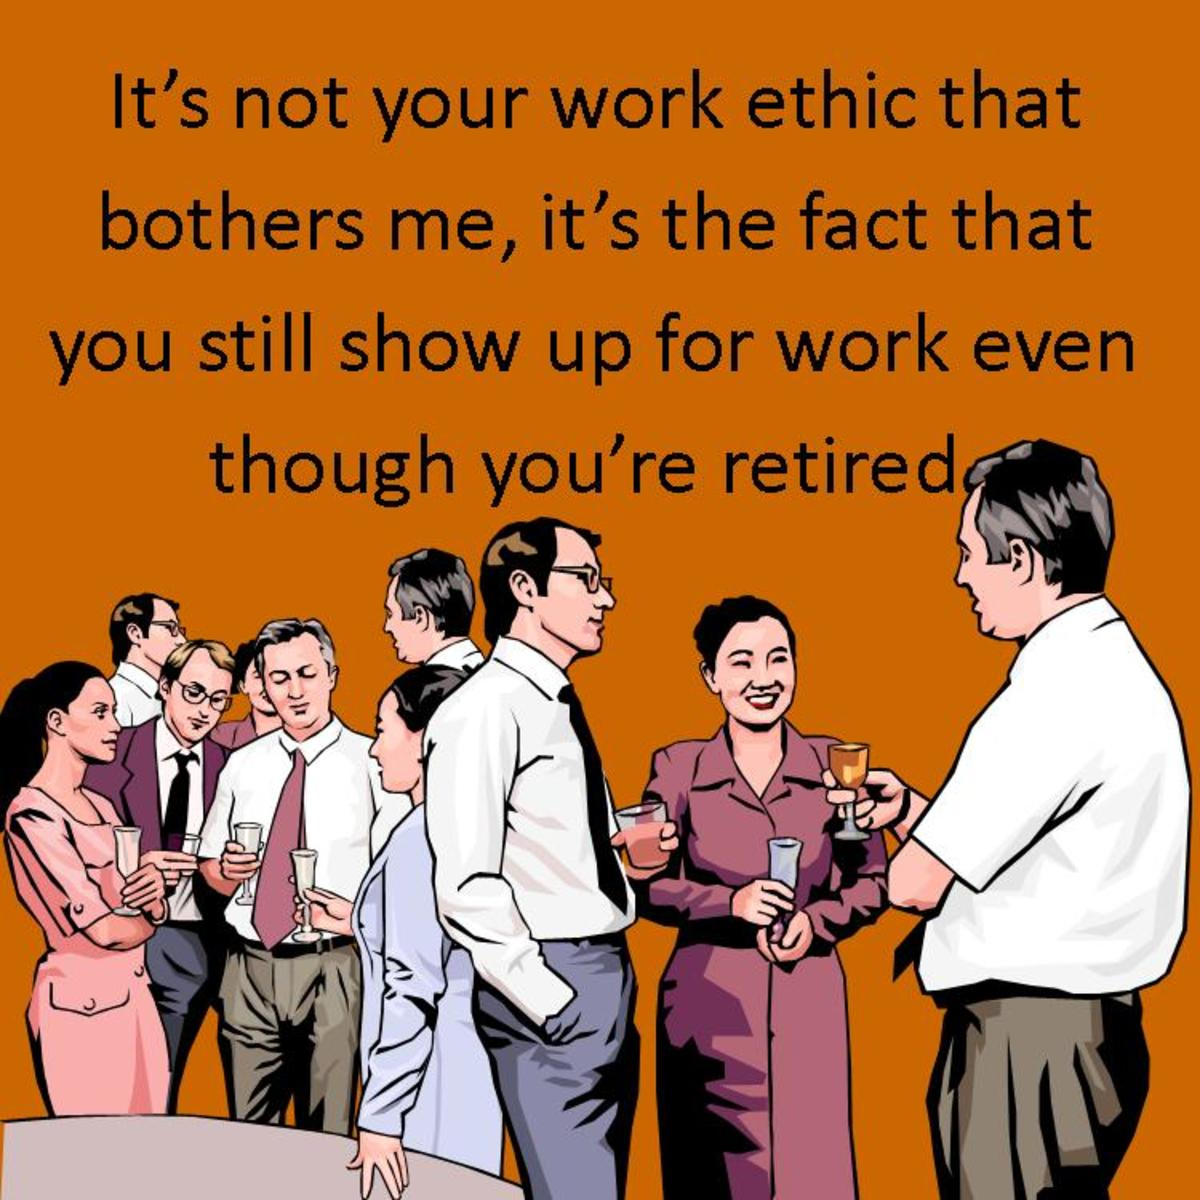 Funny retirement messages can be appropriate, but be careful. Avoid offending the retiree.